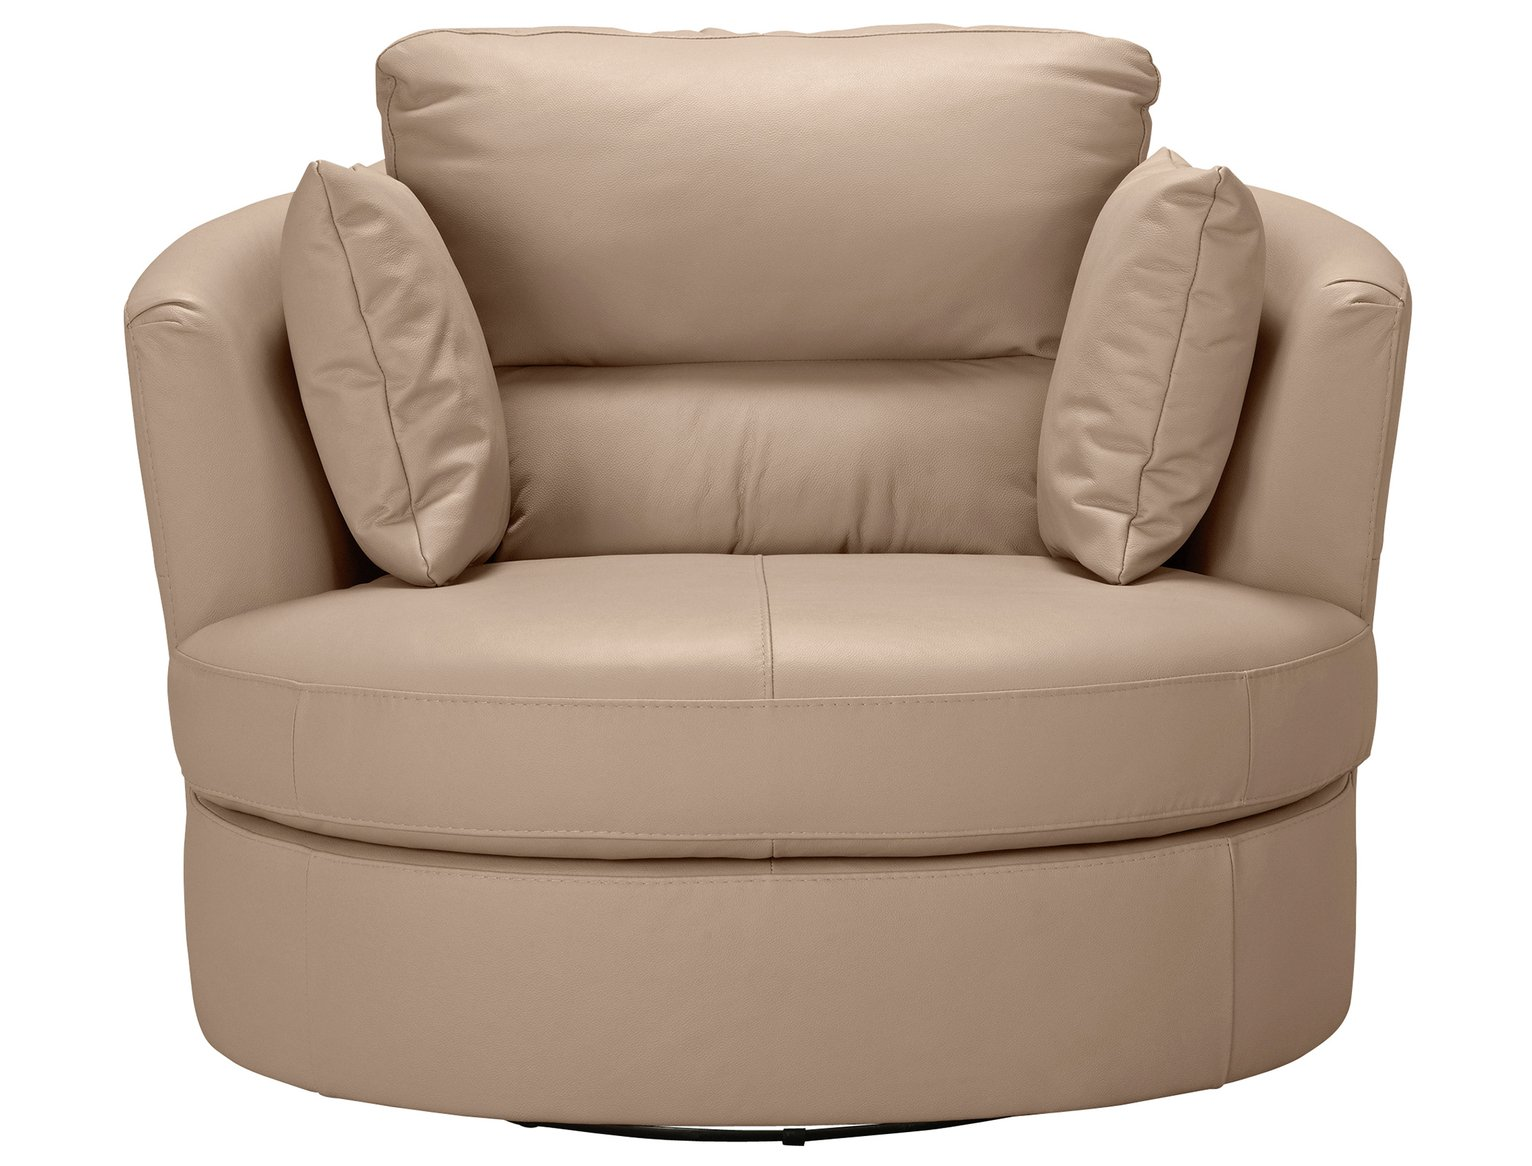 Argos Home Trieste Leather Swivel Chair - Taupe